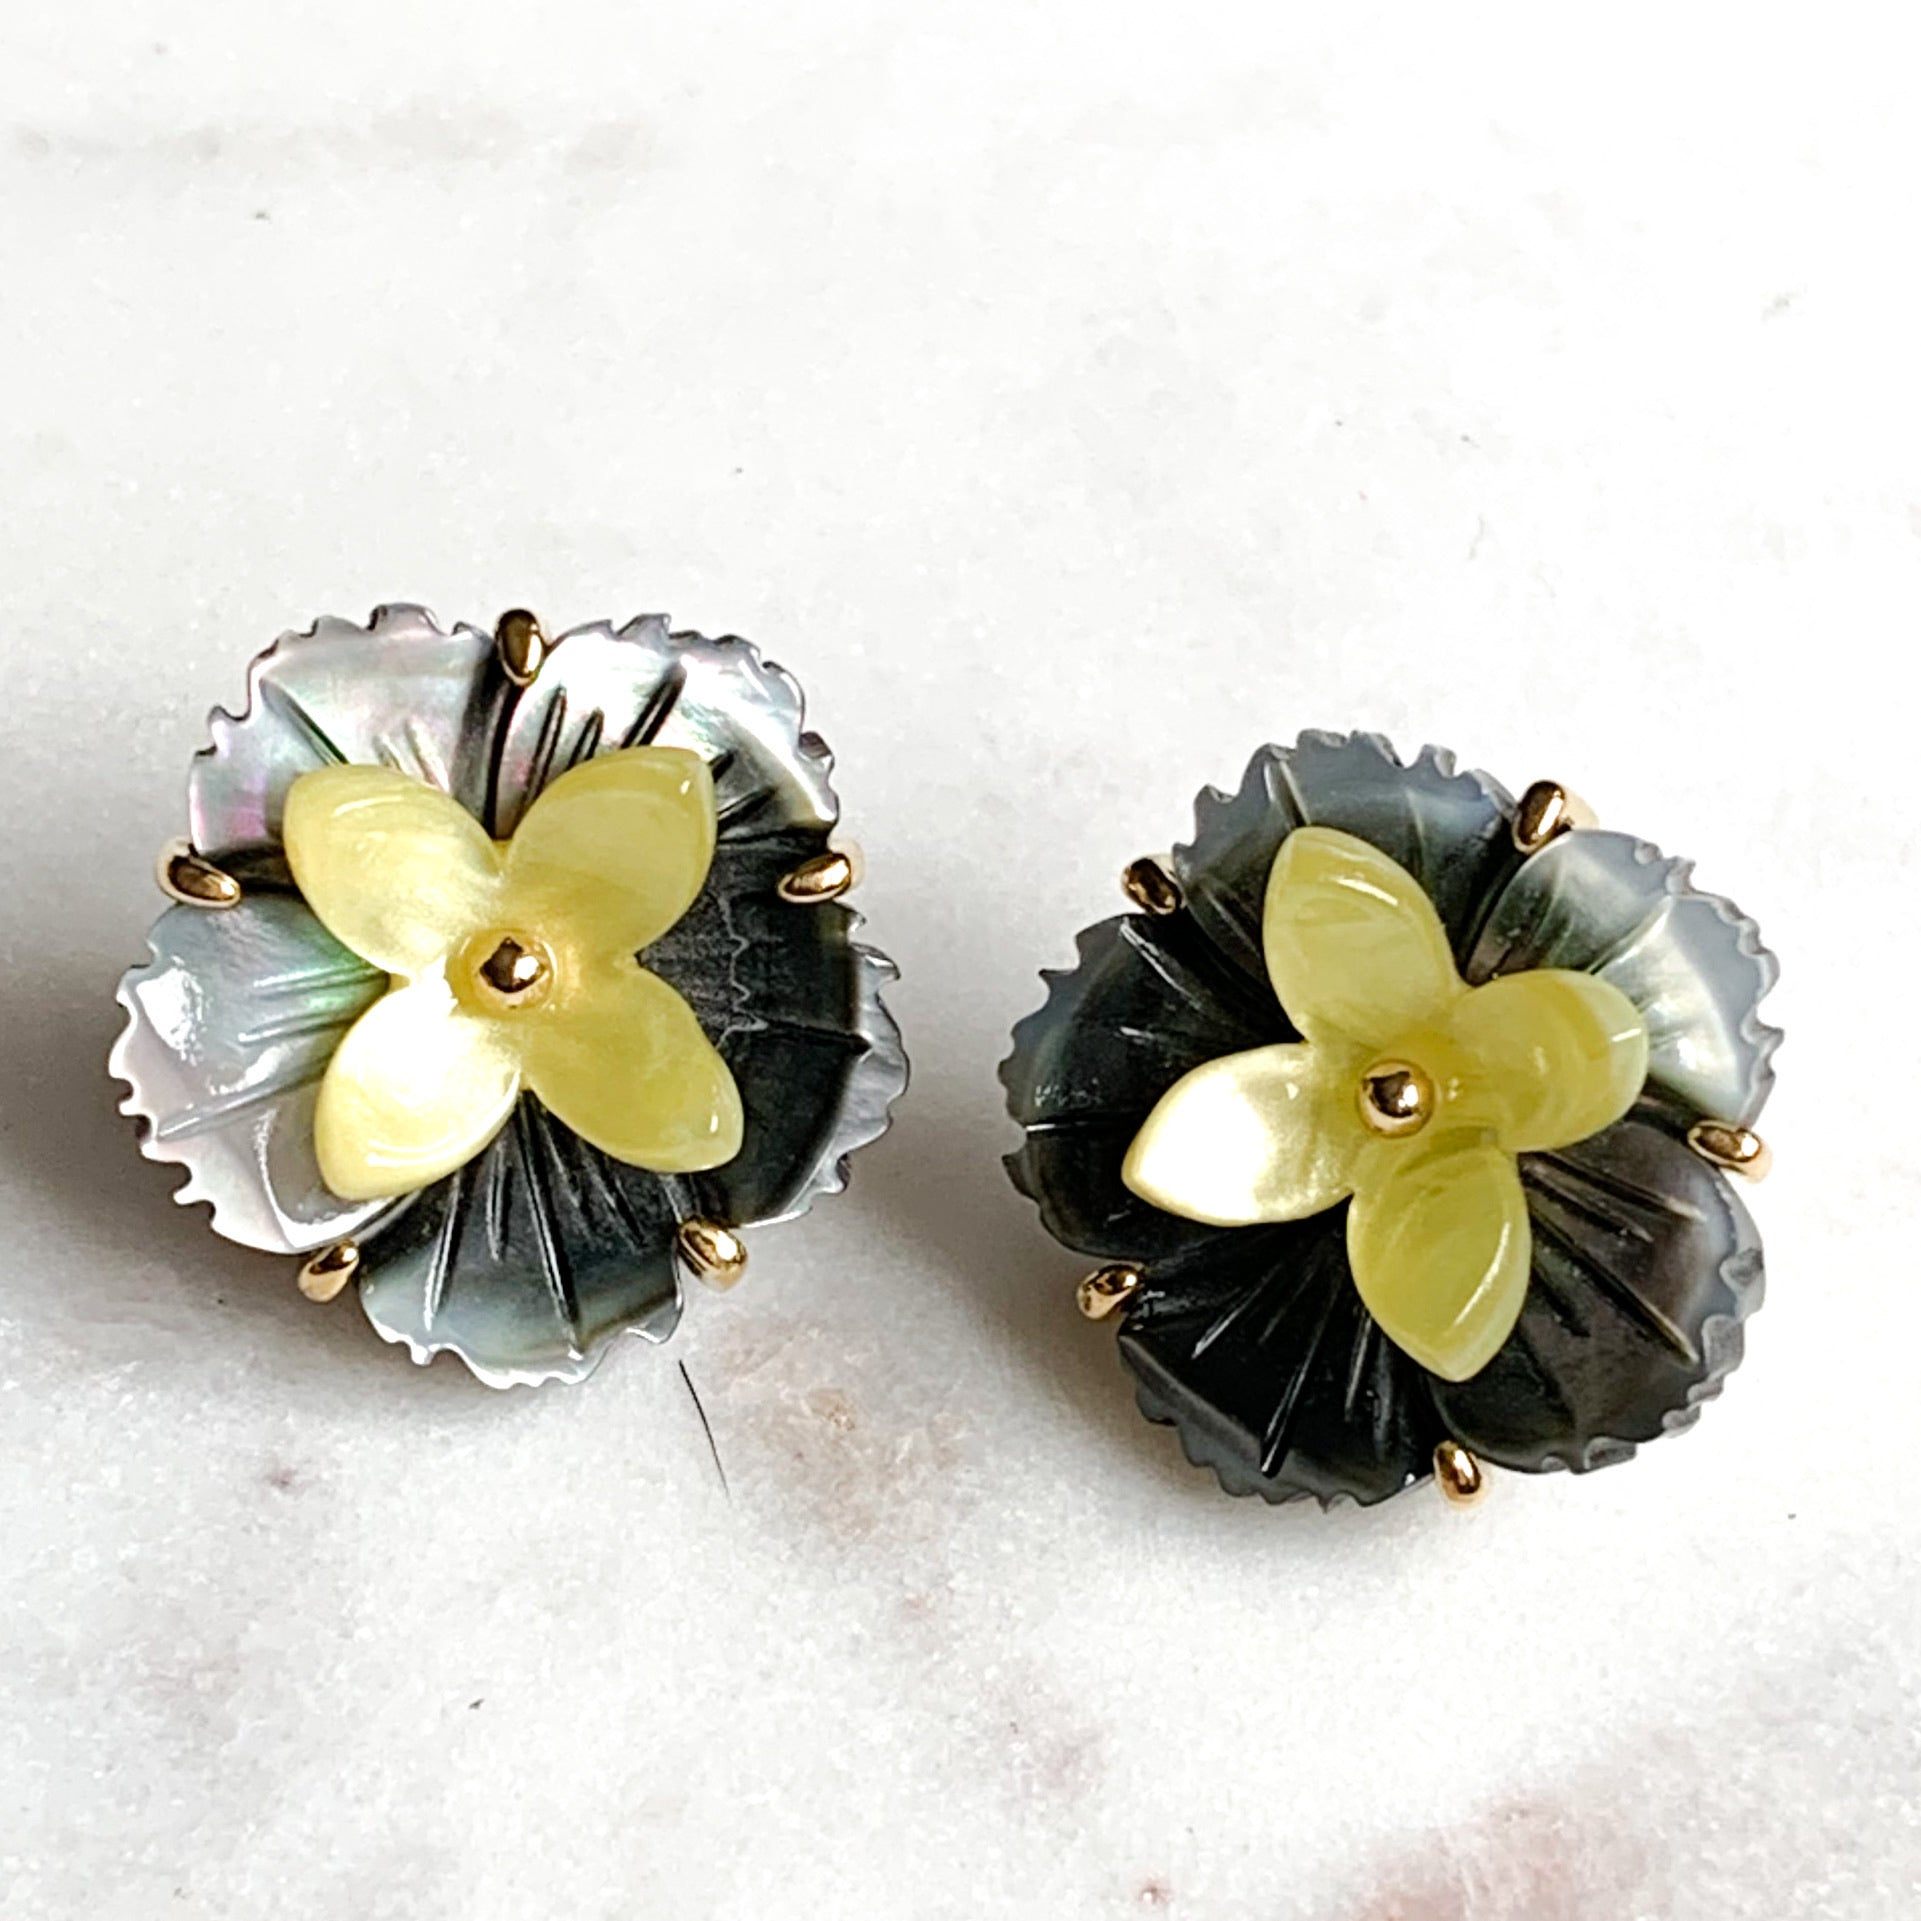 Flower and Resin Stud Earrings - Shell/Yellow